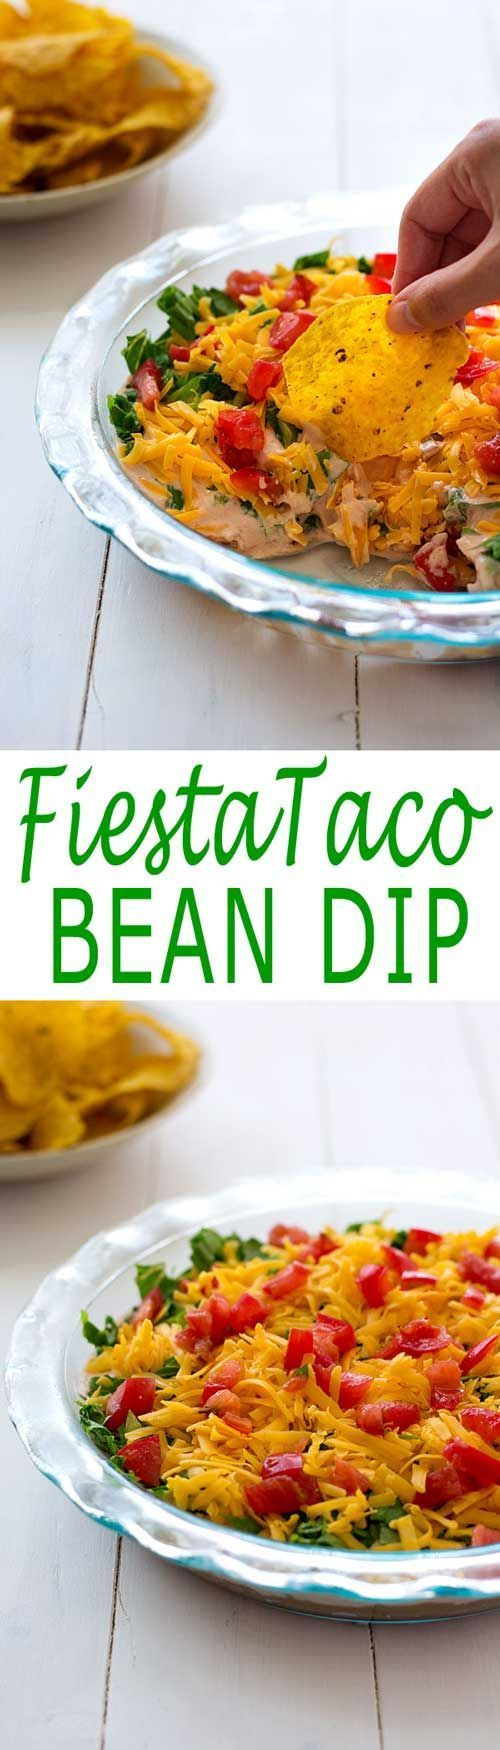 Fiesta Bean Dip layered with refried beans, salsa, sour cream, cheese, lettuce and tomatoes! | Kitchen Gidget